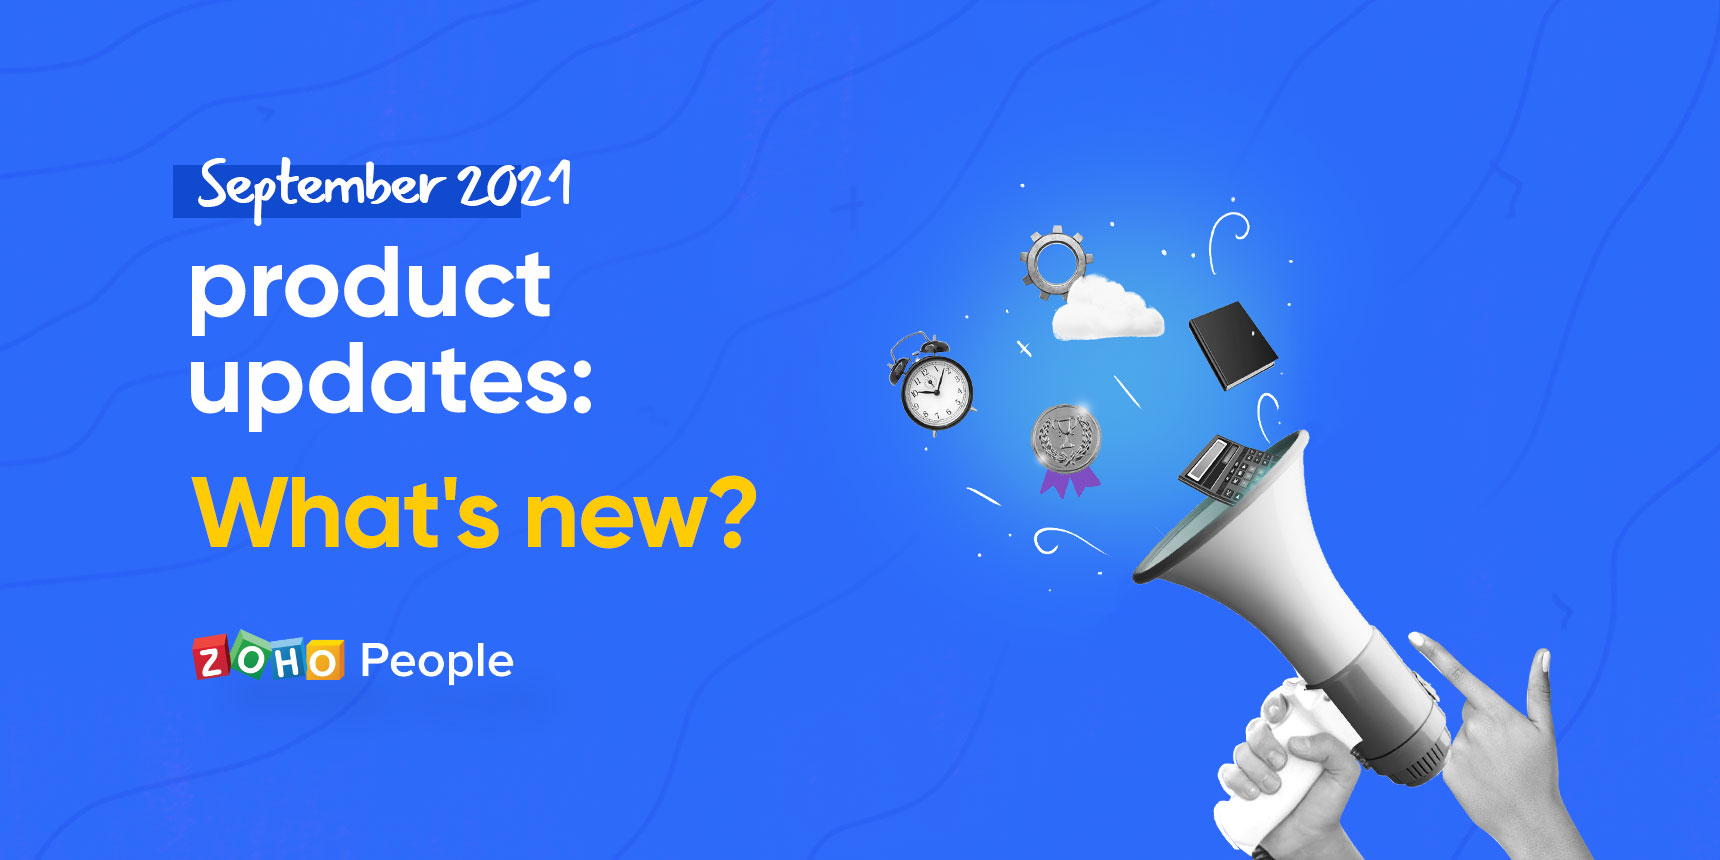 September 2021 product updates: What new in Zoho People?